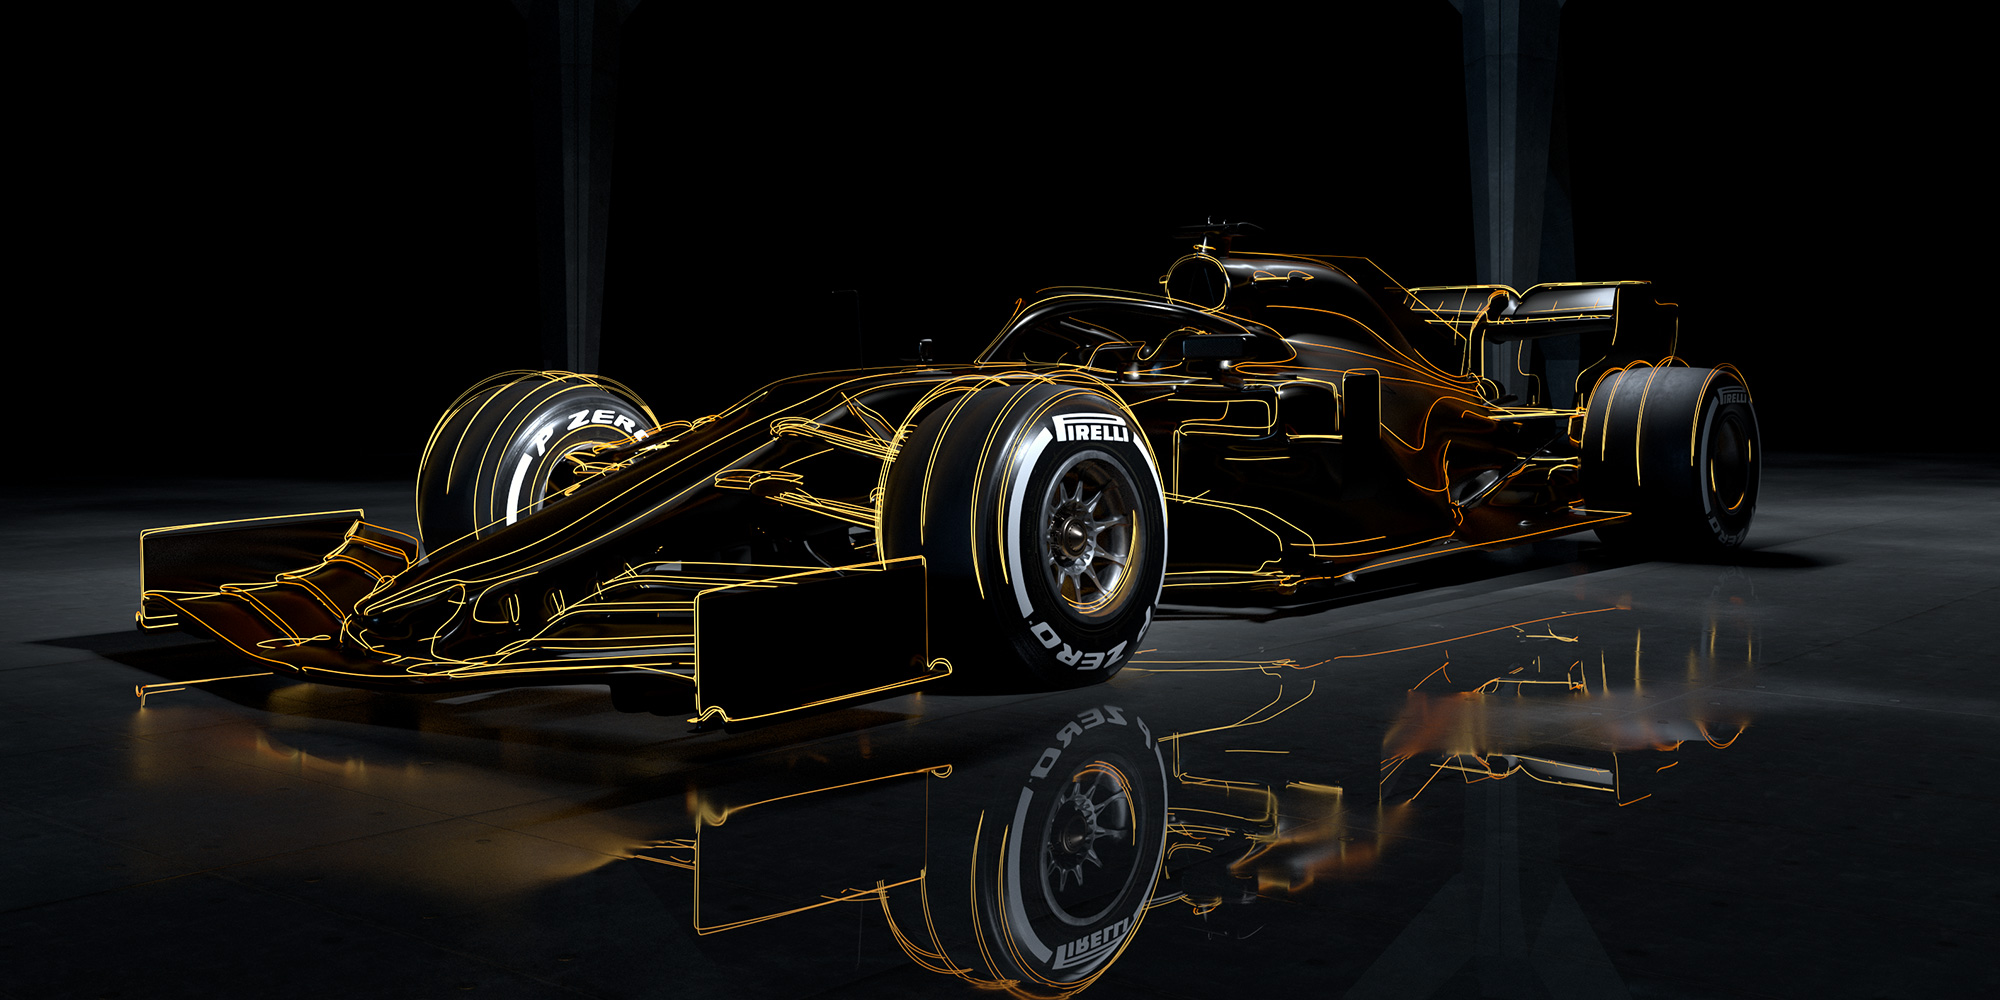 15] F1 2019 Wallpapers on WallpaperSafari 2000x1000